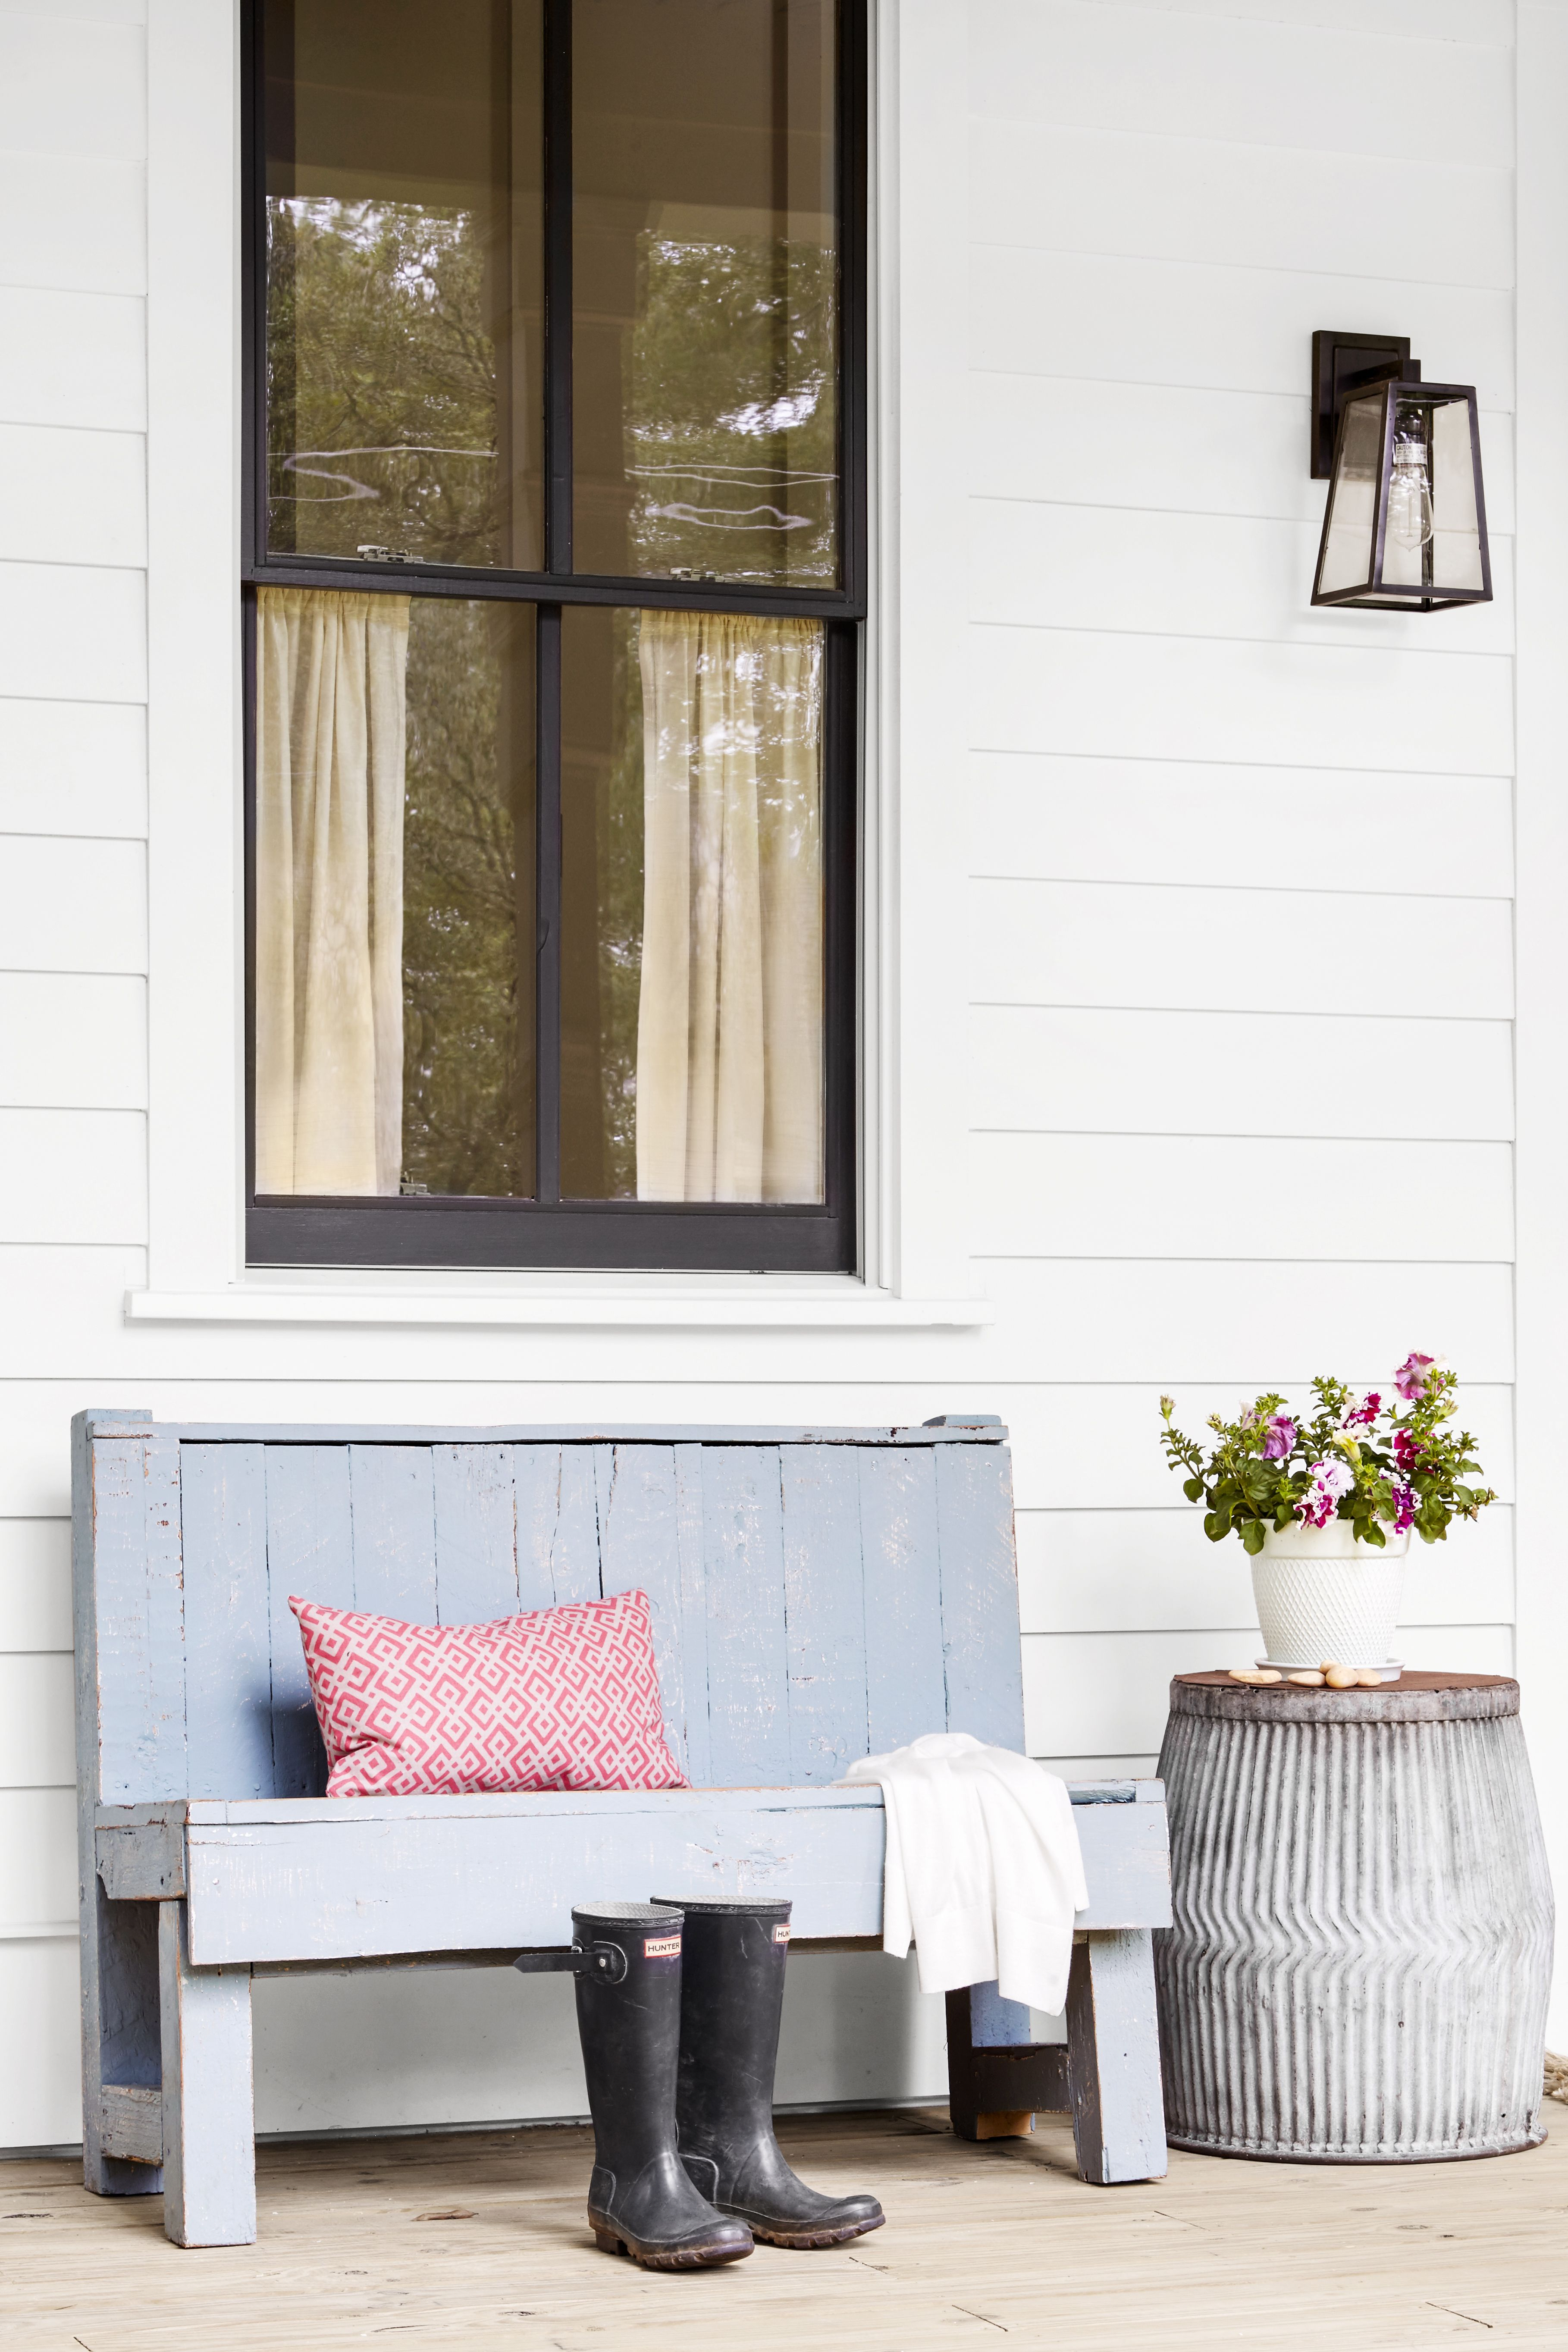 25 Best Patio and Porch Design Ideas - Decorating Your Outdoor Space